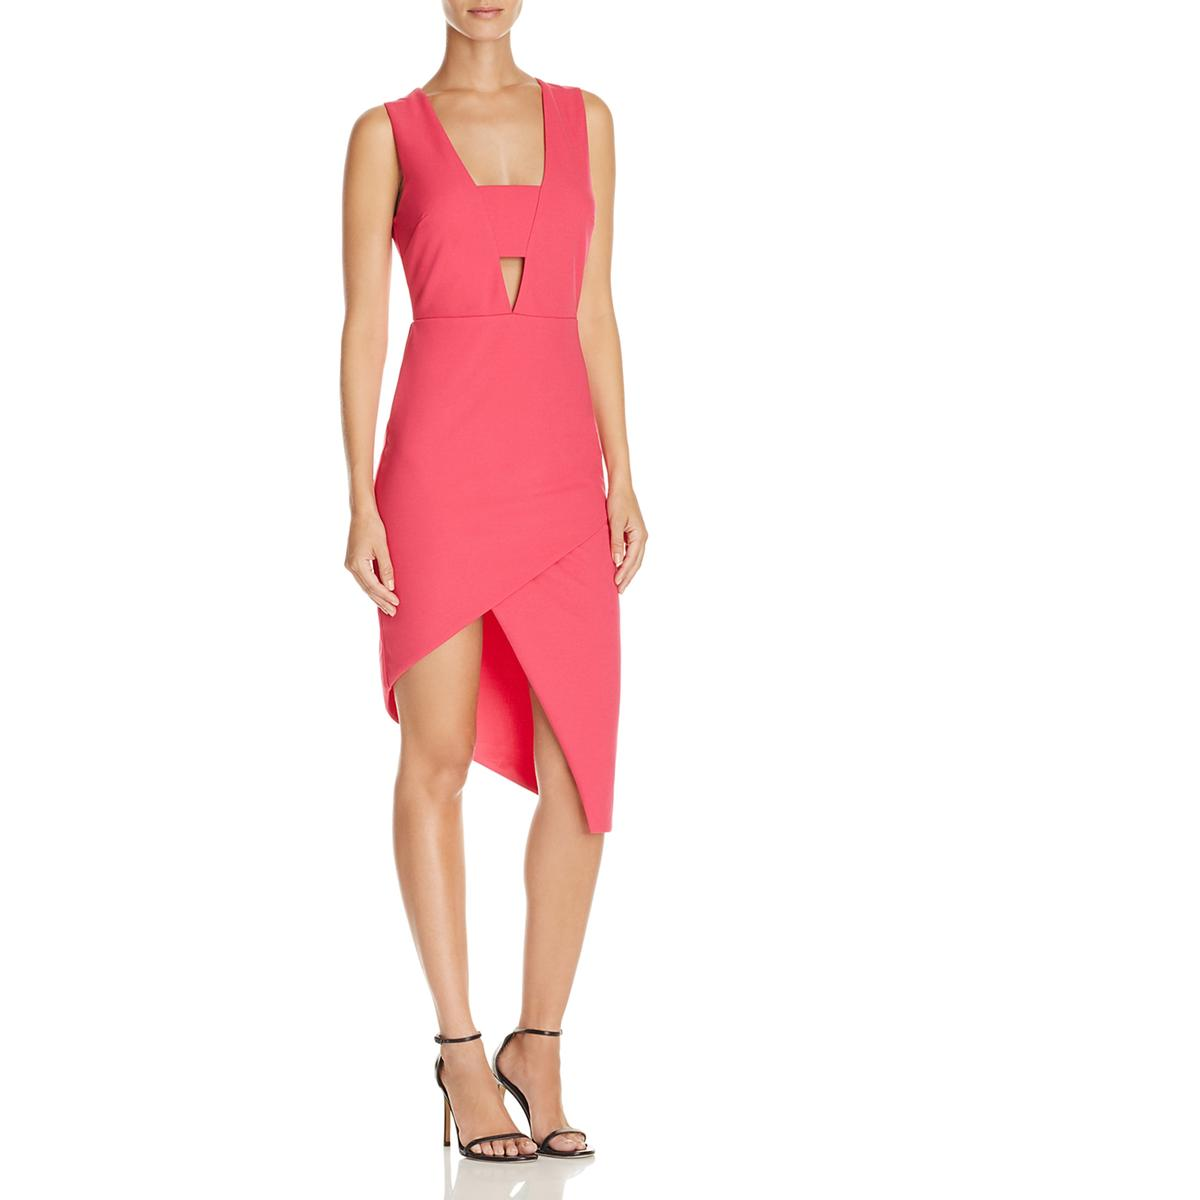 1b5190b610d Details about Do + Be Womens Pink Cut-Out Asymmetric Crepe Cocktail Dress  XS BHFO 4553